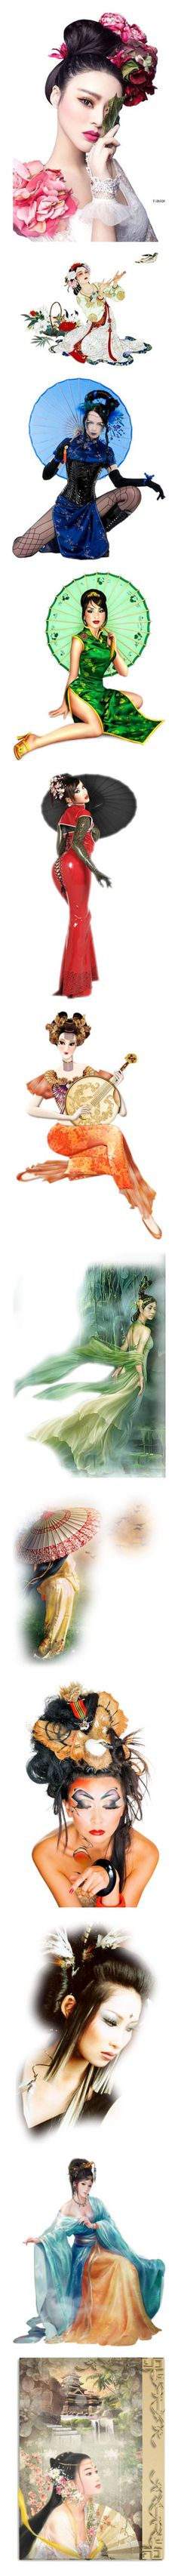 """""""Women, Asia - Far East"""" by najoli ❤ liked on Polyvore featuring geishas, doll head, asian, people, fairies, tubes, dolls, fantasy, oriental and art"""